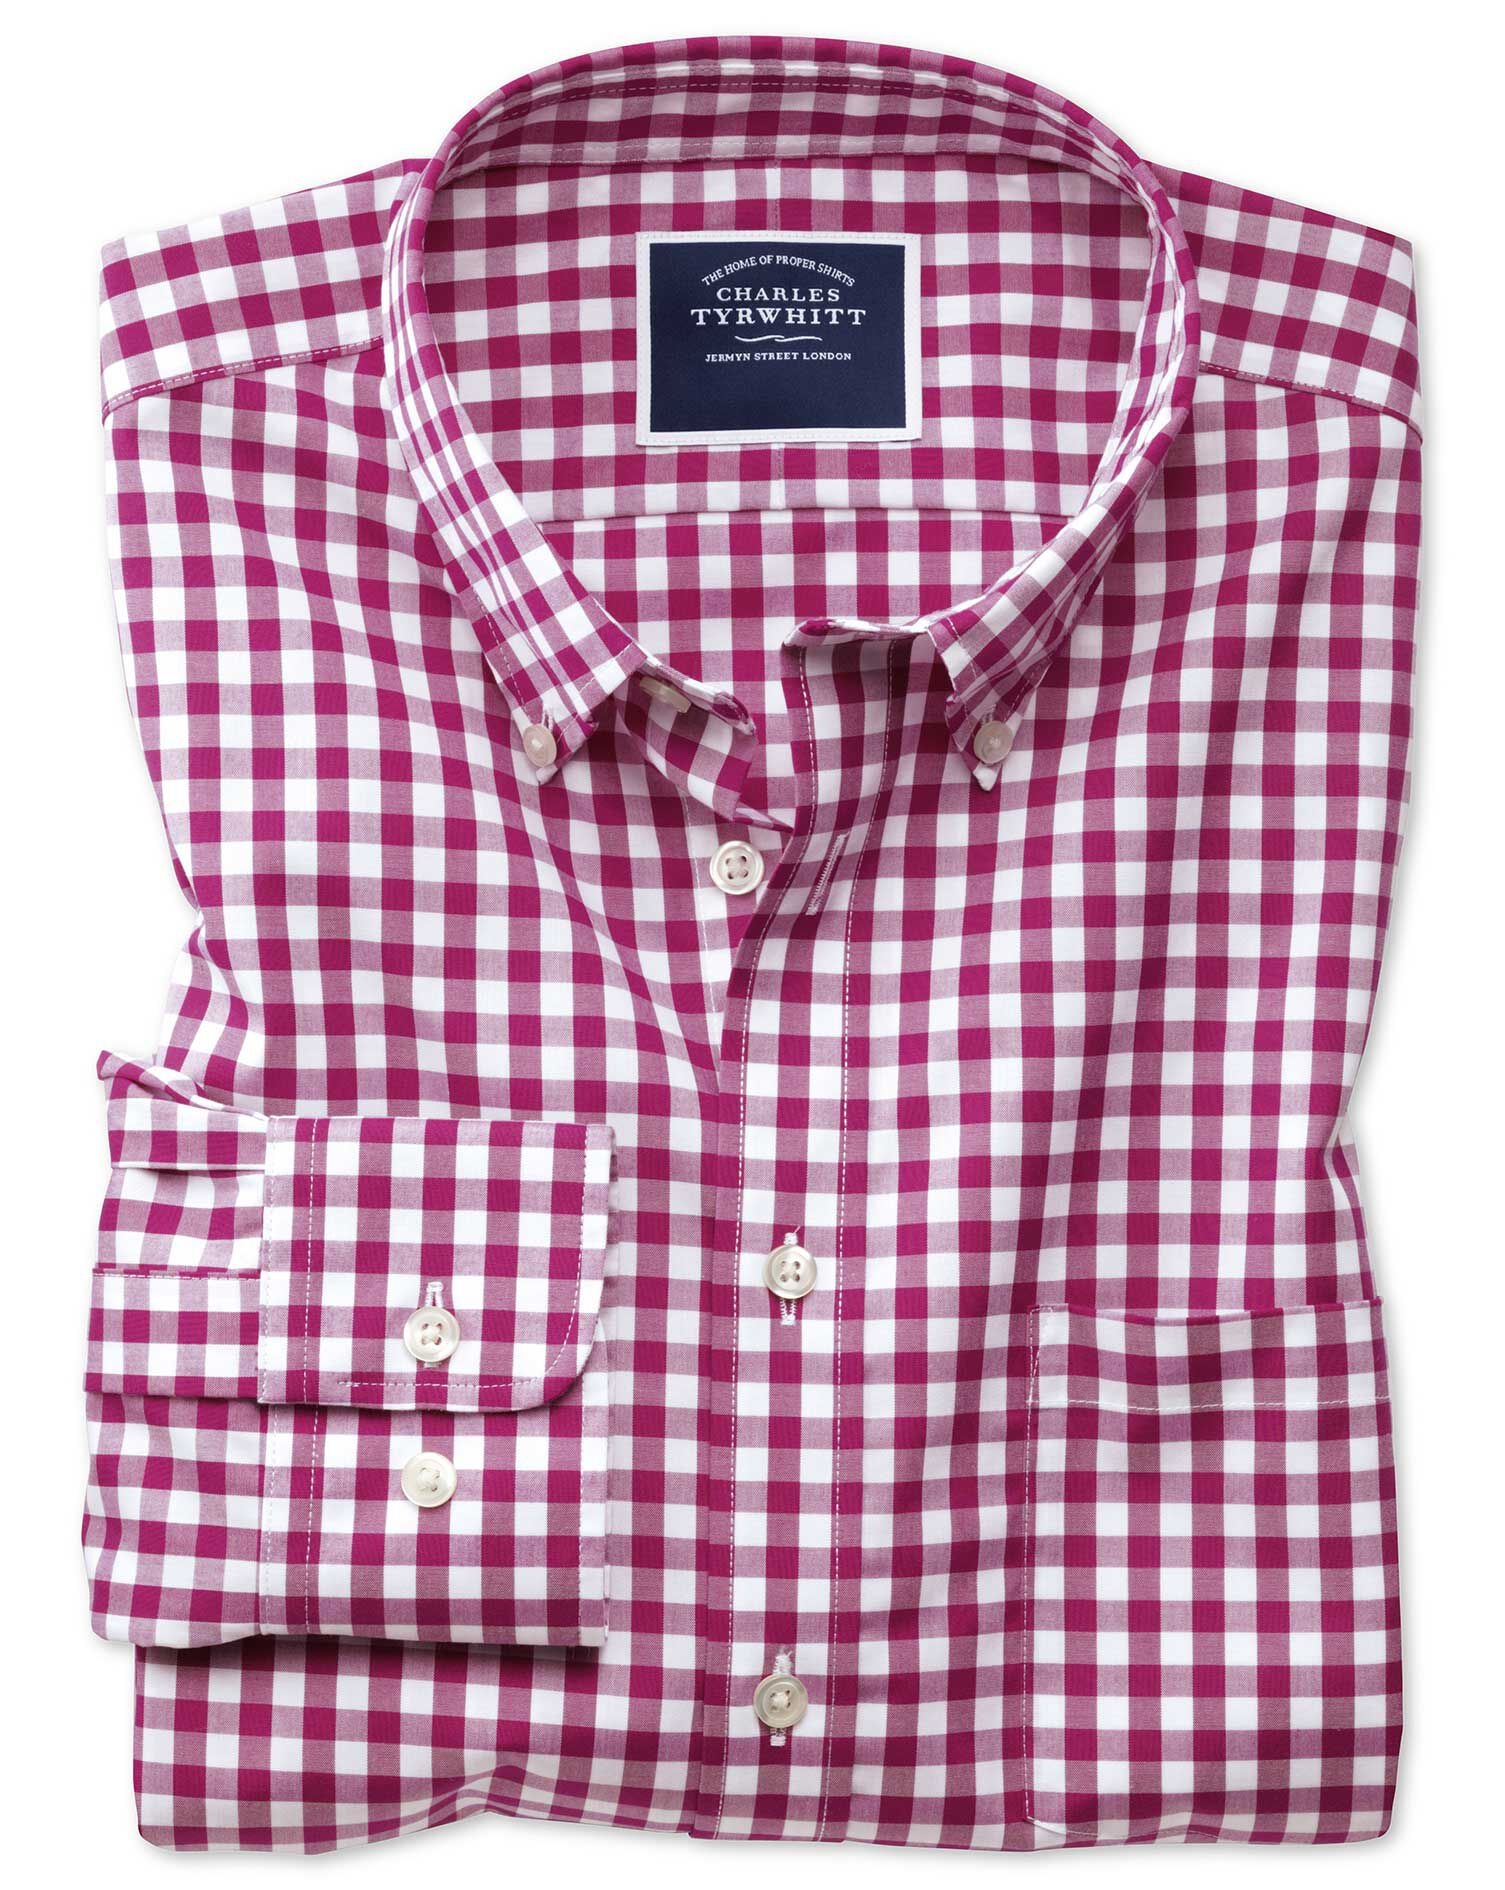 Slim Fit Button-Down Non-Iron Poplin Red Gingham Cotton Shirt Single Cuff Size XL by Charles Tyrwhit